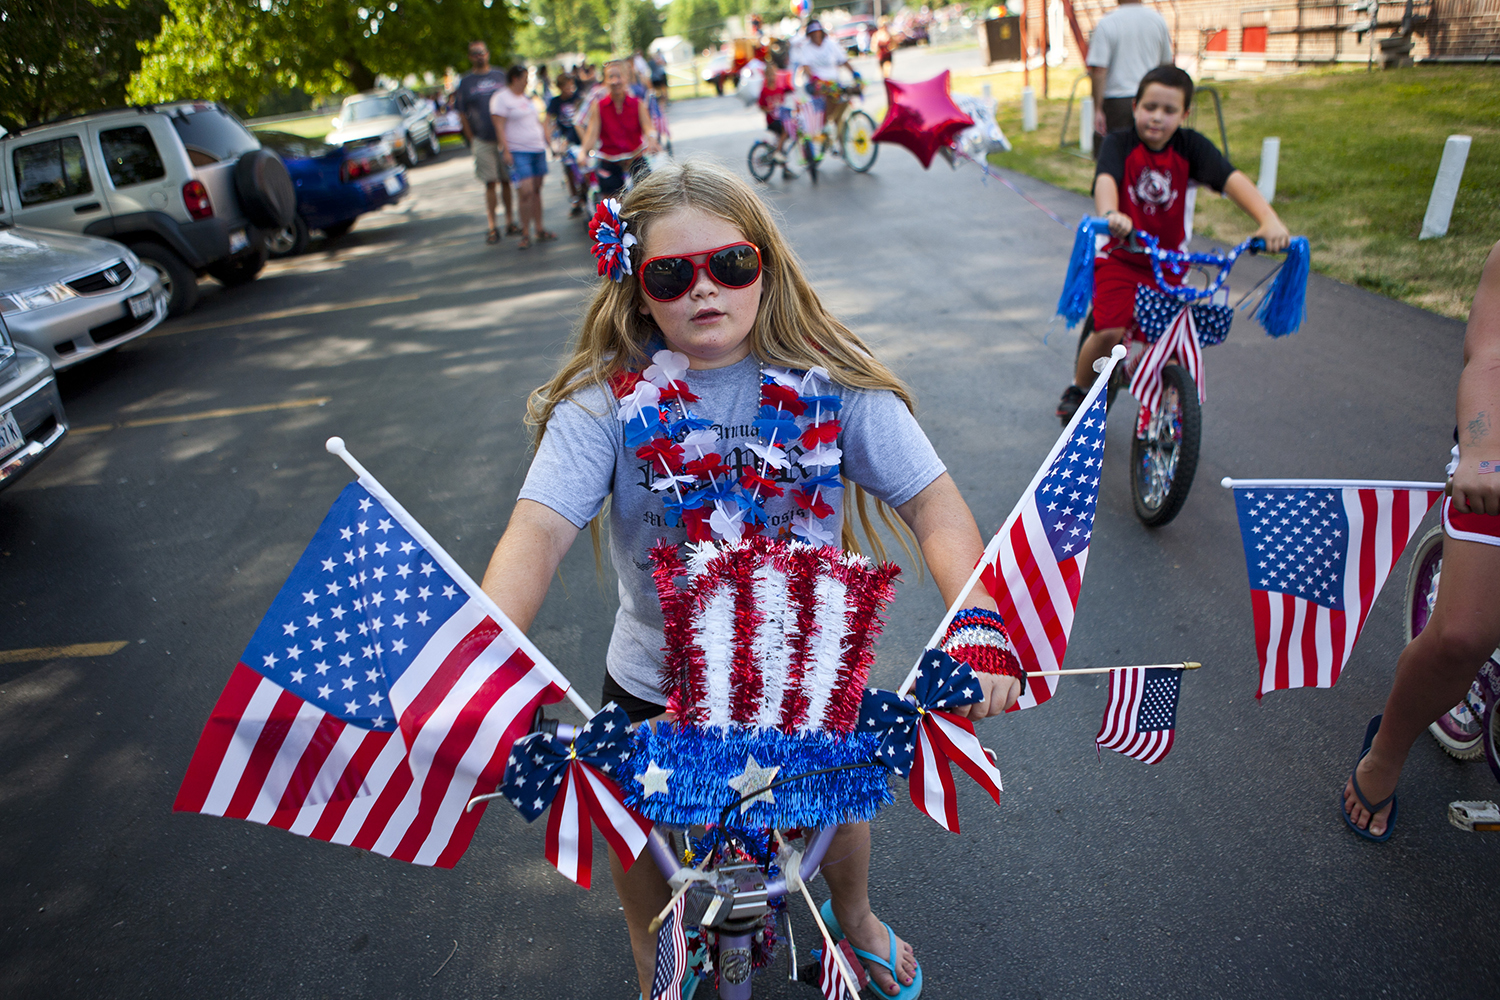 Haley Kennedy, 10, won first place in the bike decorating contest with her Independence Day inspired bicycle during the Fourth of July celebration parade, Wednesday, July 4, 2012, in Franklin, Ill. Franklin's Fourth of July celebration included a festival at Franklin Park with a basketball tournament along with the annual burgoo soup sale. Justin L. Fowler/The State Journal-Register